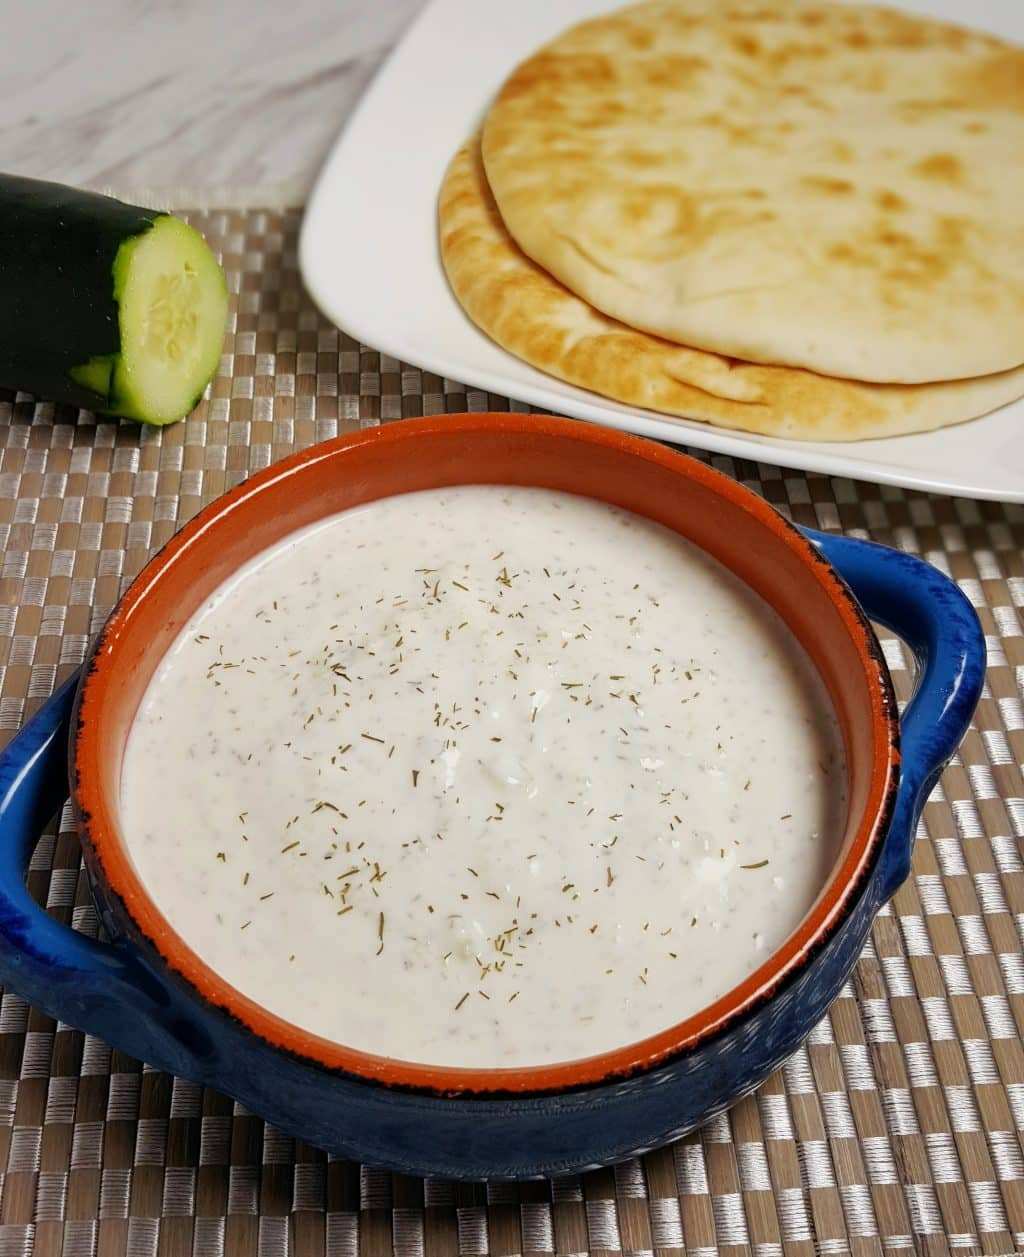 Greek Tzatziki Sauce Recipe {Garlic Cucumber Yogurt Dip}